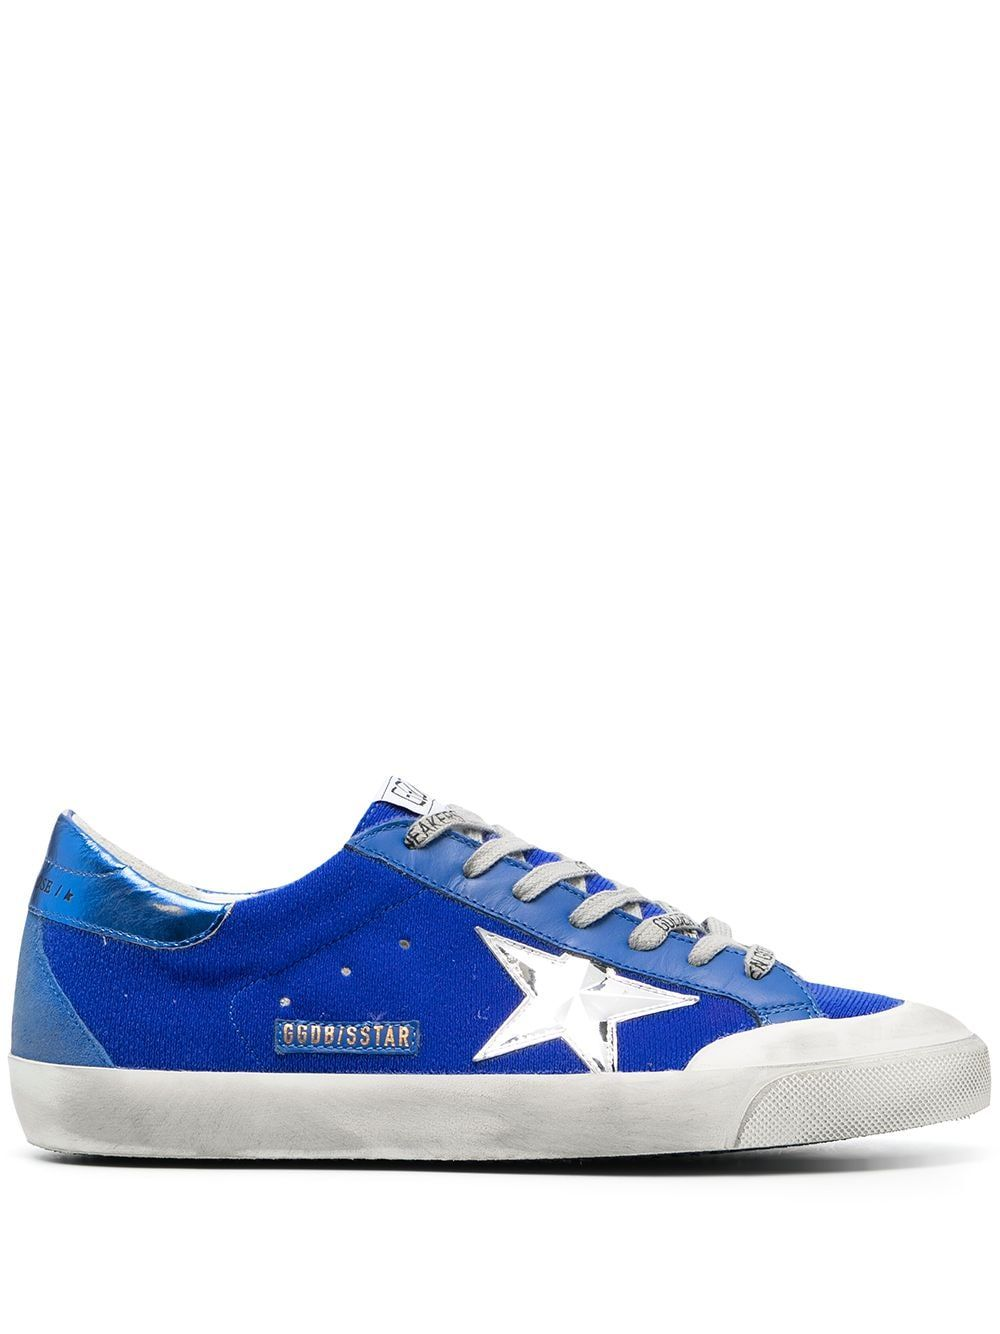 Golden Goose Leathers GOLDEN GOOSE MEN'S GMF00175F00125750595 BLUE LEATHER SNEAKERS